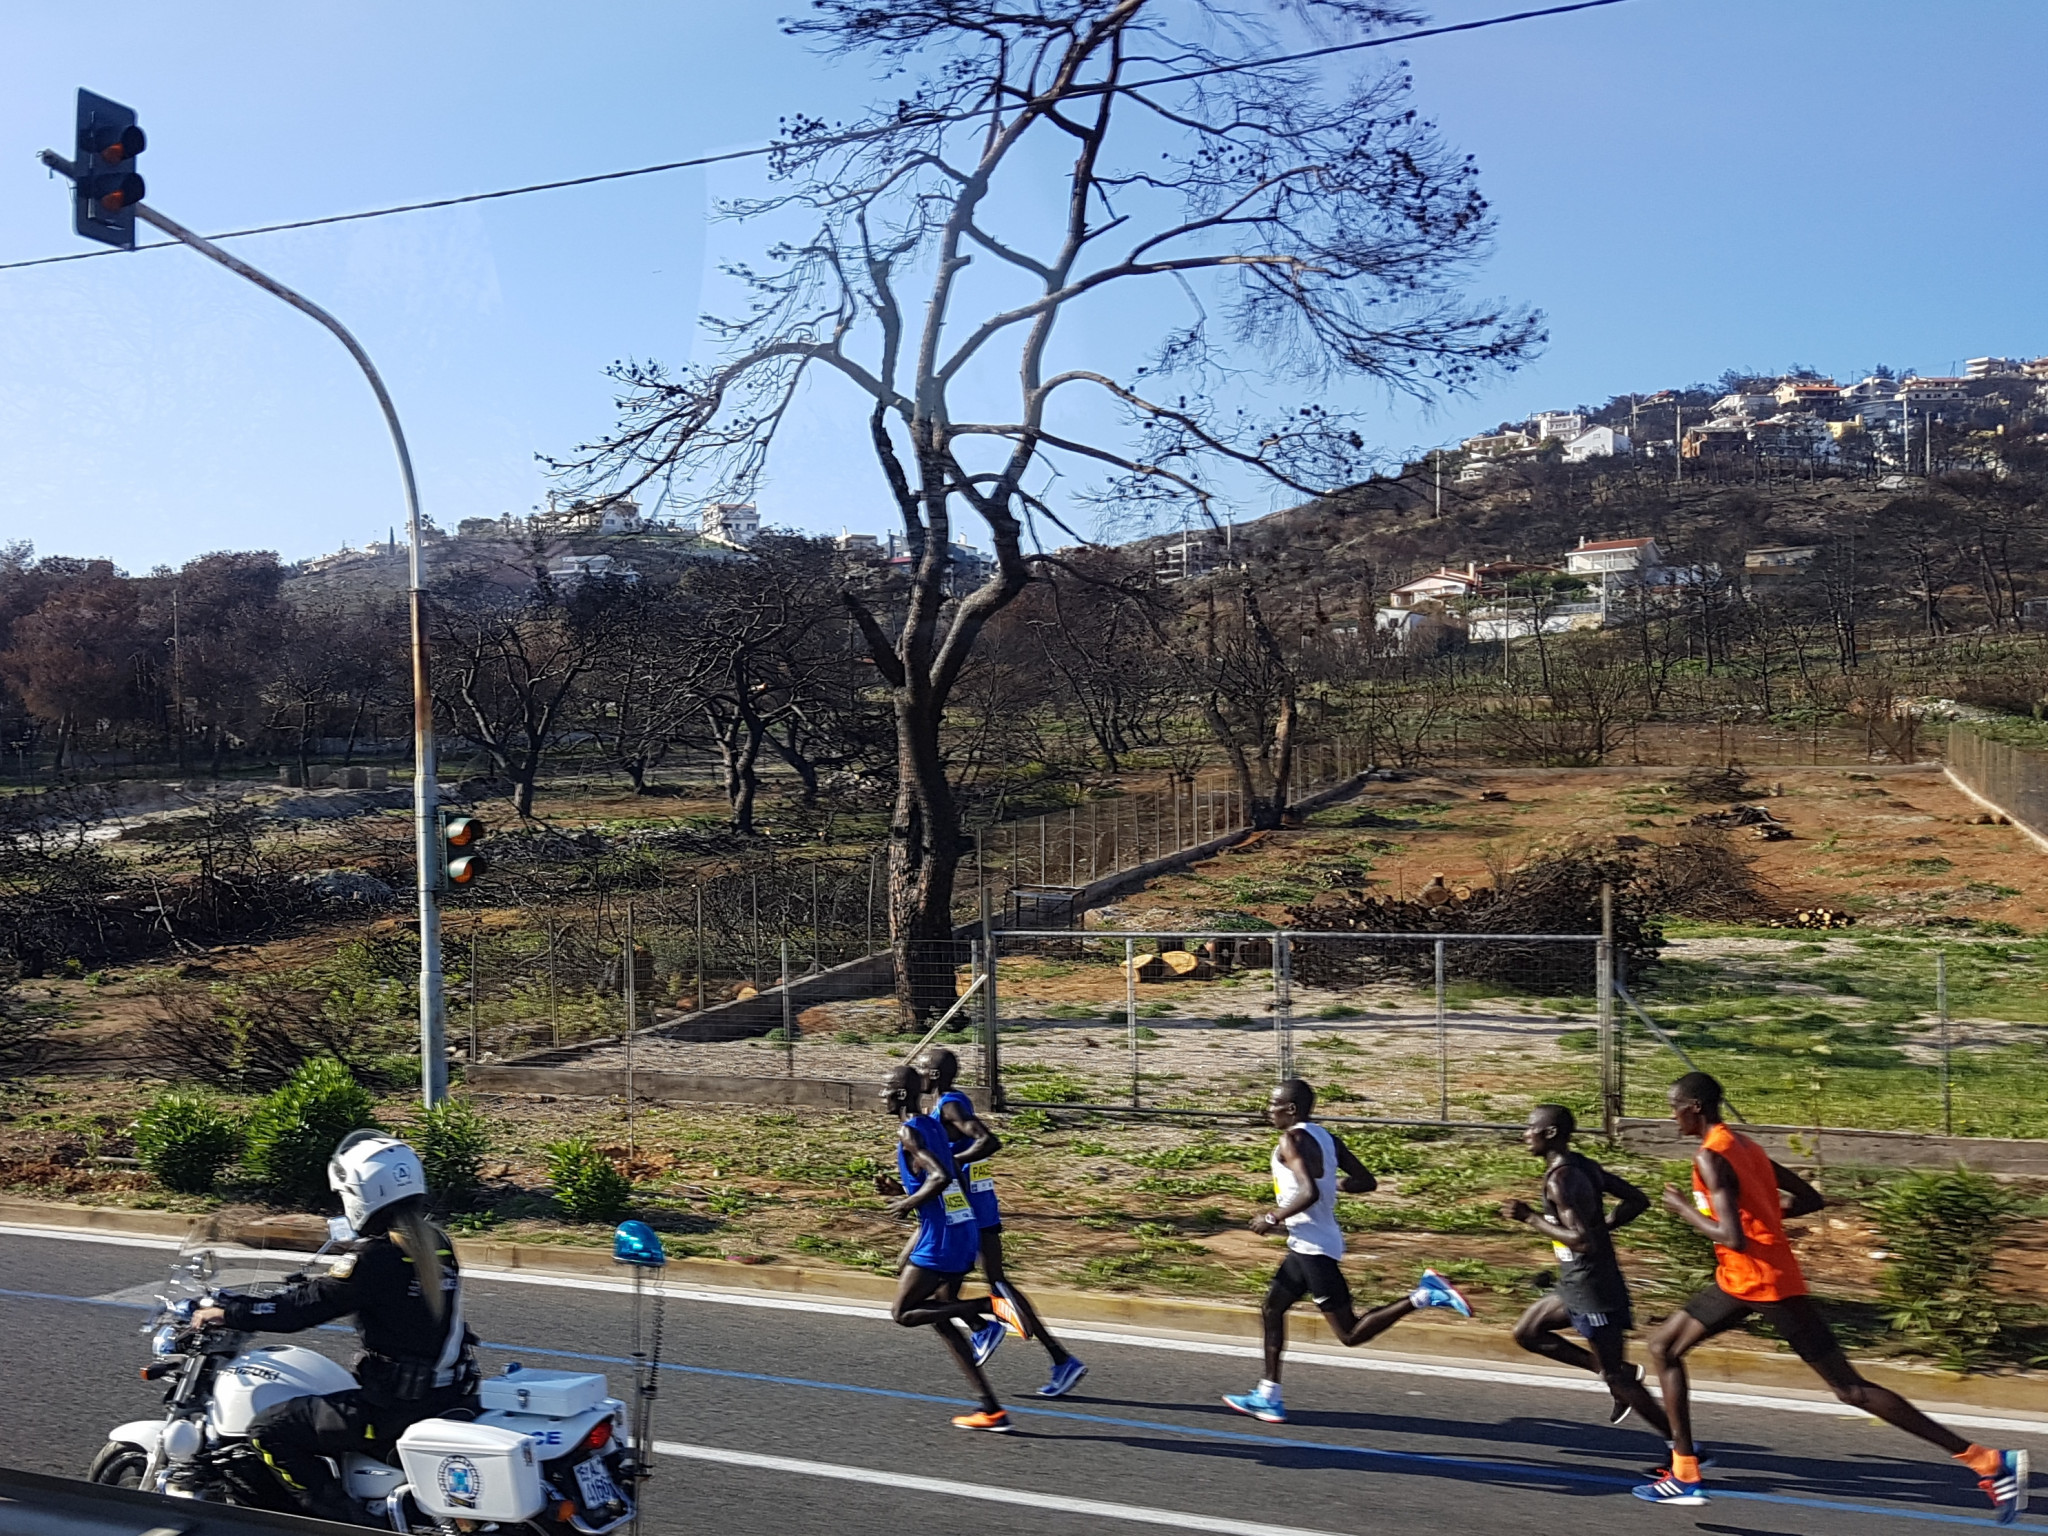 The race went through areas in Greece savaged by the summer's highly traumatic wildfires ©ITG